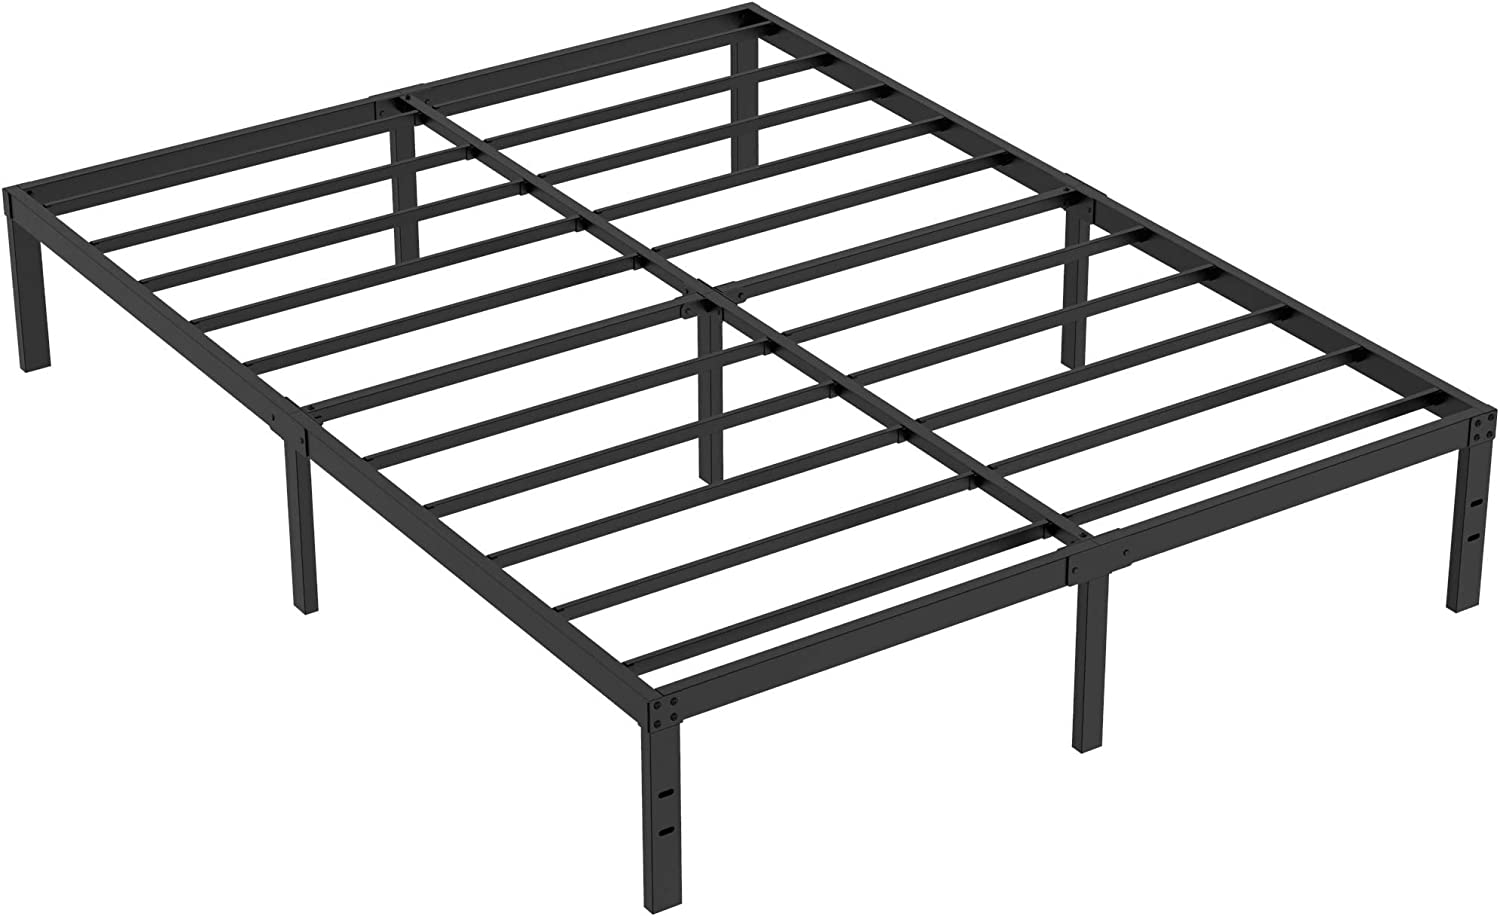 Heavy Duty Non-Slip Queen Size Bed Frame with Steel Slat Support, 14 Inch Durable and Strong Platform Metal Bed Frames Mattress Foundation for 3500 lbs, No Noise, No Box Spring Needed